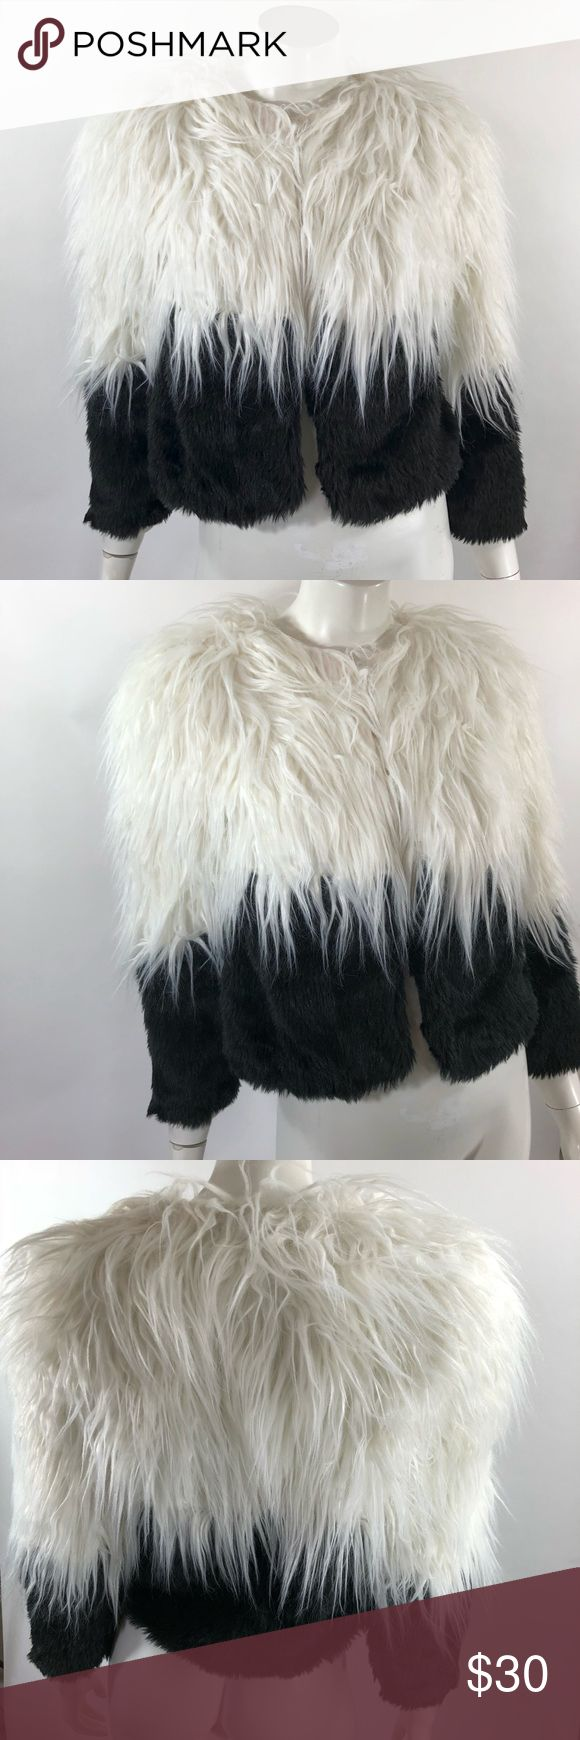 Choies Jacket Large Black White Fuzzy Black White Choies Womens Jacket Large Black White Fuzzy Faux Fur Black White Colorblock NEW. Measurements: (in inches) Underarm to underarm: 17 Length: 19.5 Sleeve: 21 New with tags. Choies Jackets & Coats